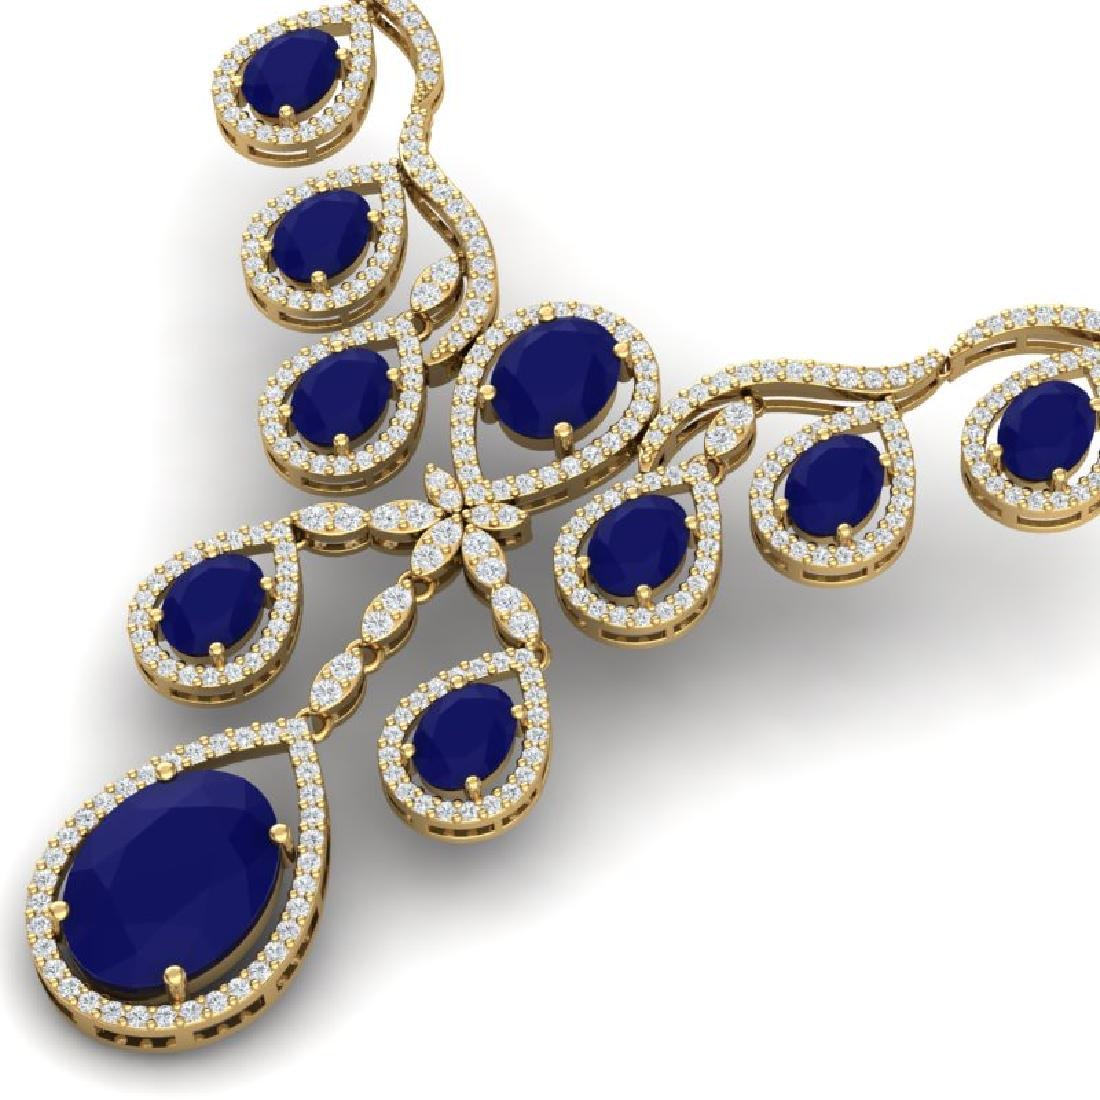 37.66 CTW Royalty Sapphire & VS Diamond Necklace 18K - 2